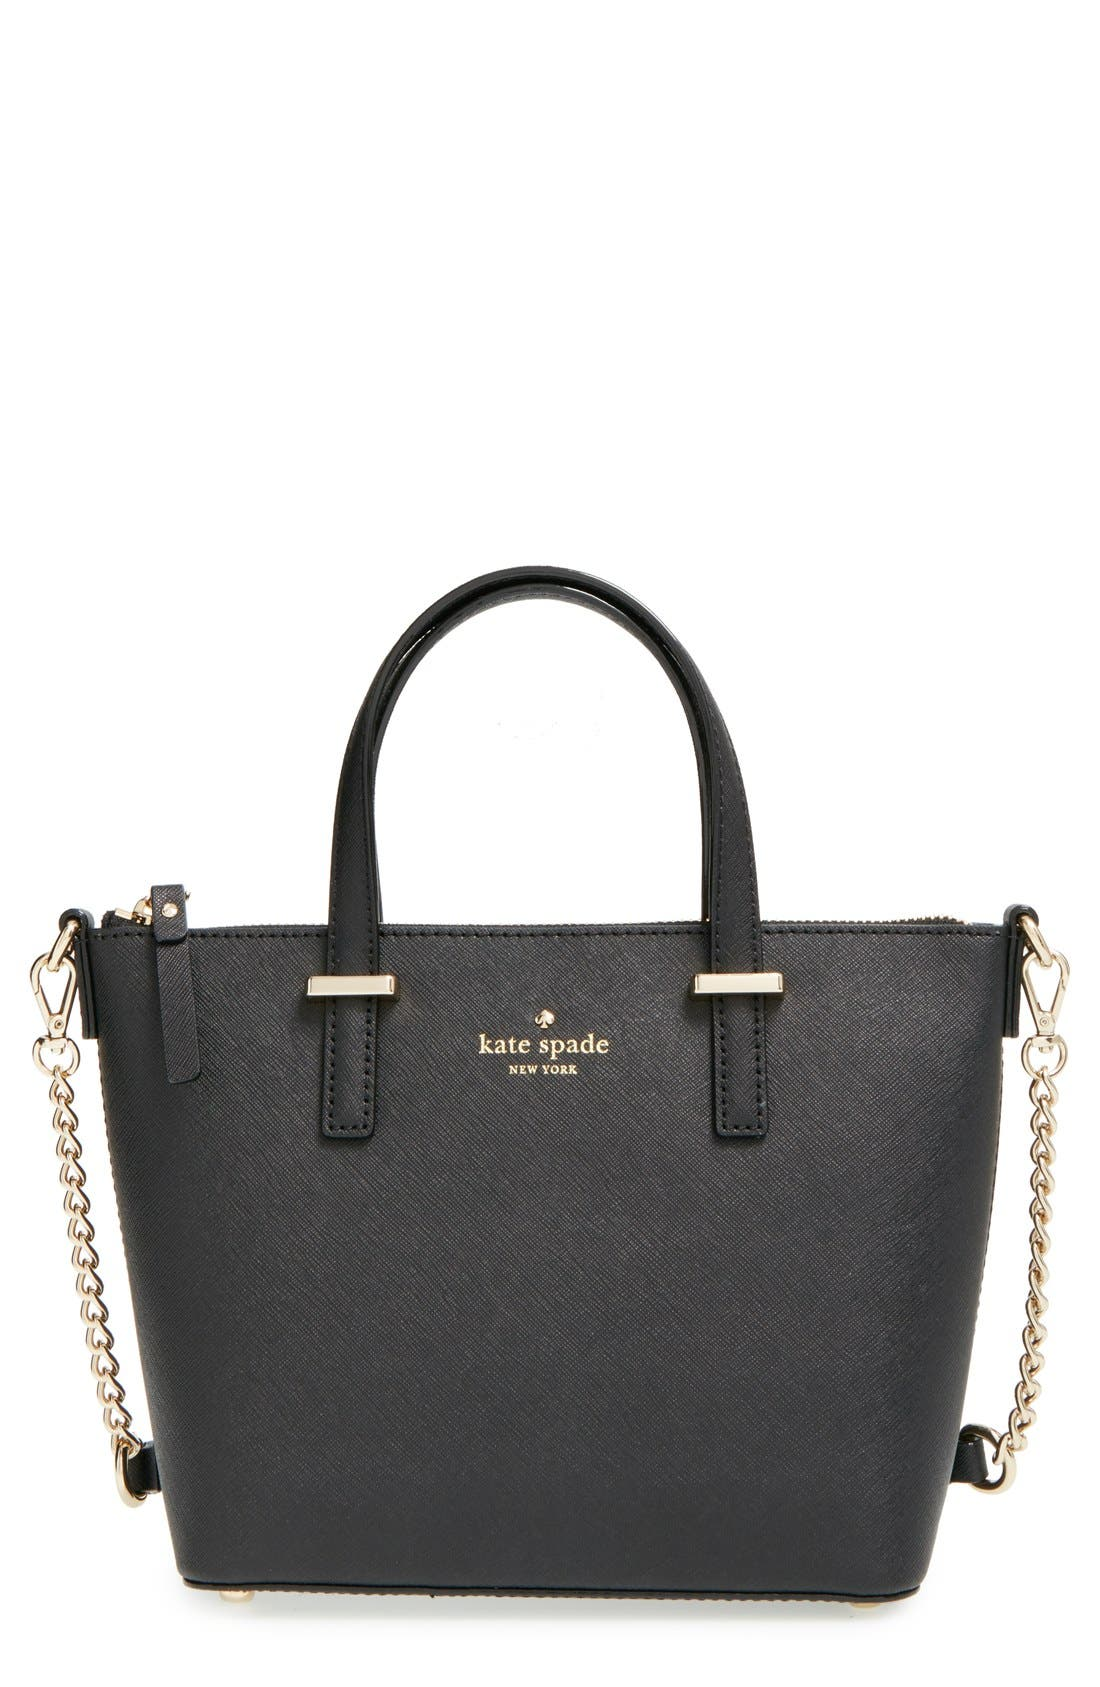 Alternate Image 1 Selected - kate spade new york 'cedar street - harmony' crossbody bag